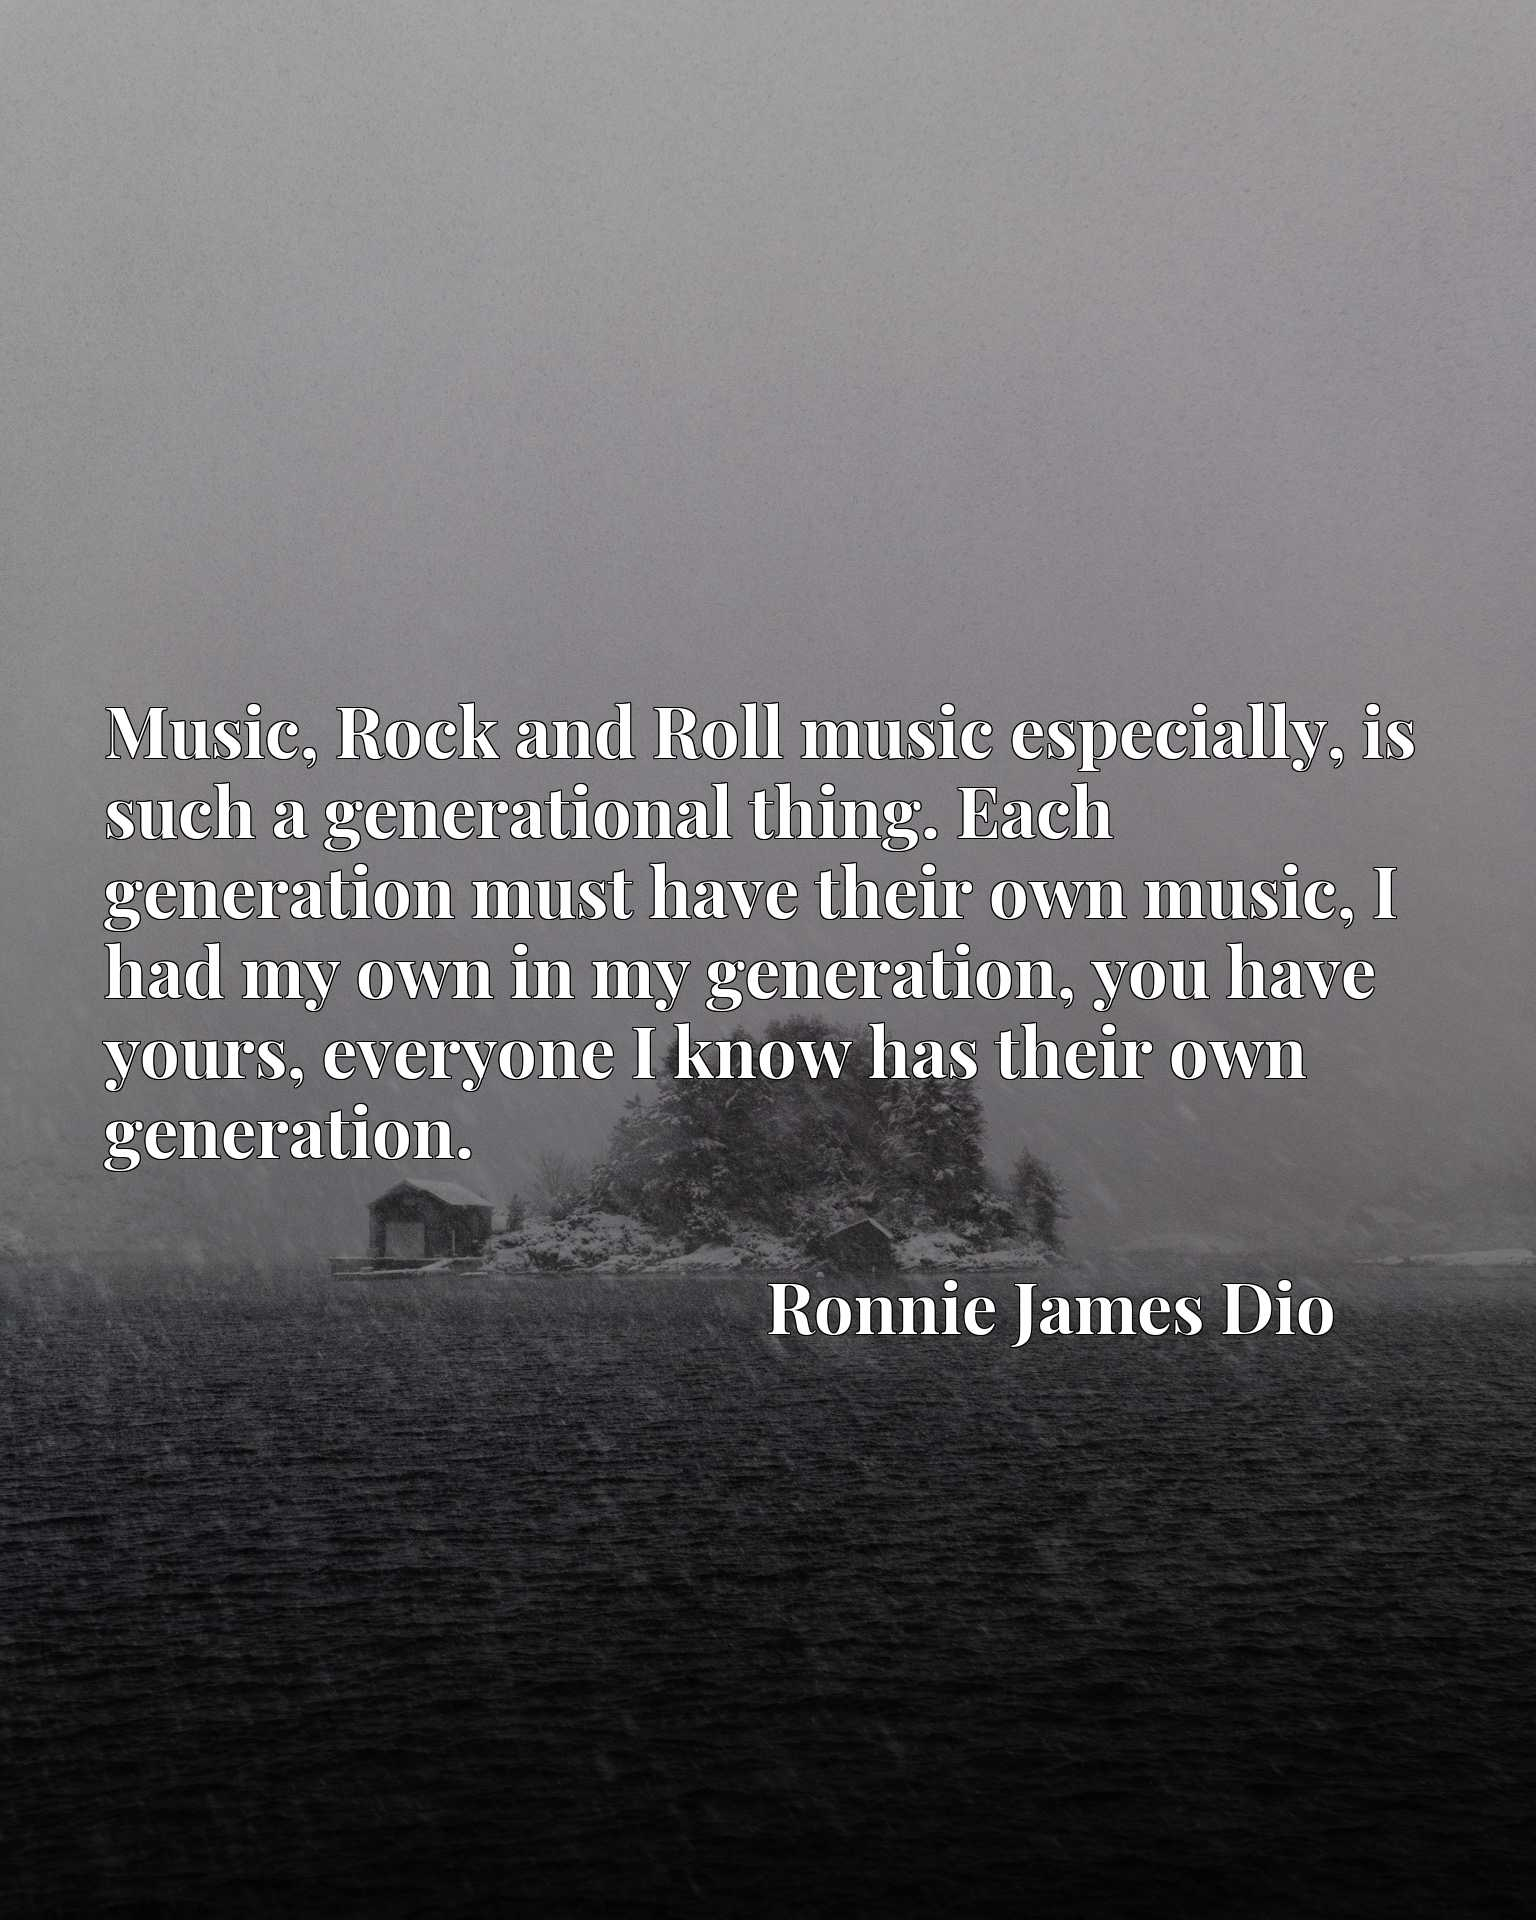 Music, Rock and Roll music especially, is such a generational thing. Each generation must have their own music, I had my own in my generation, you have yours, everyone I know has their own generation.